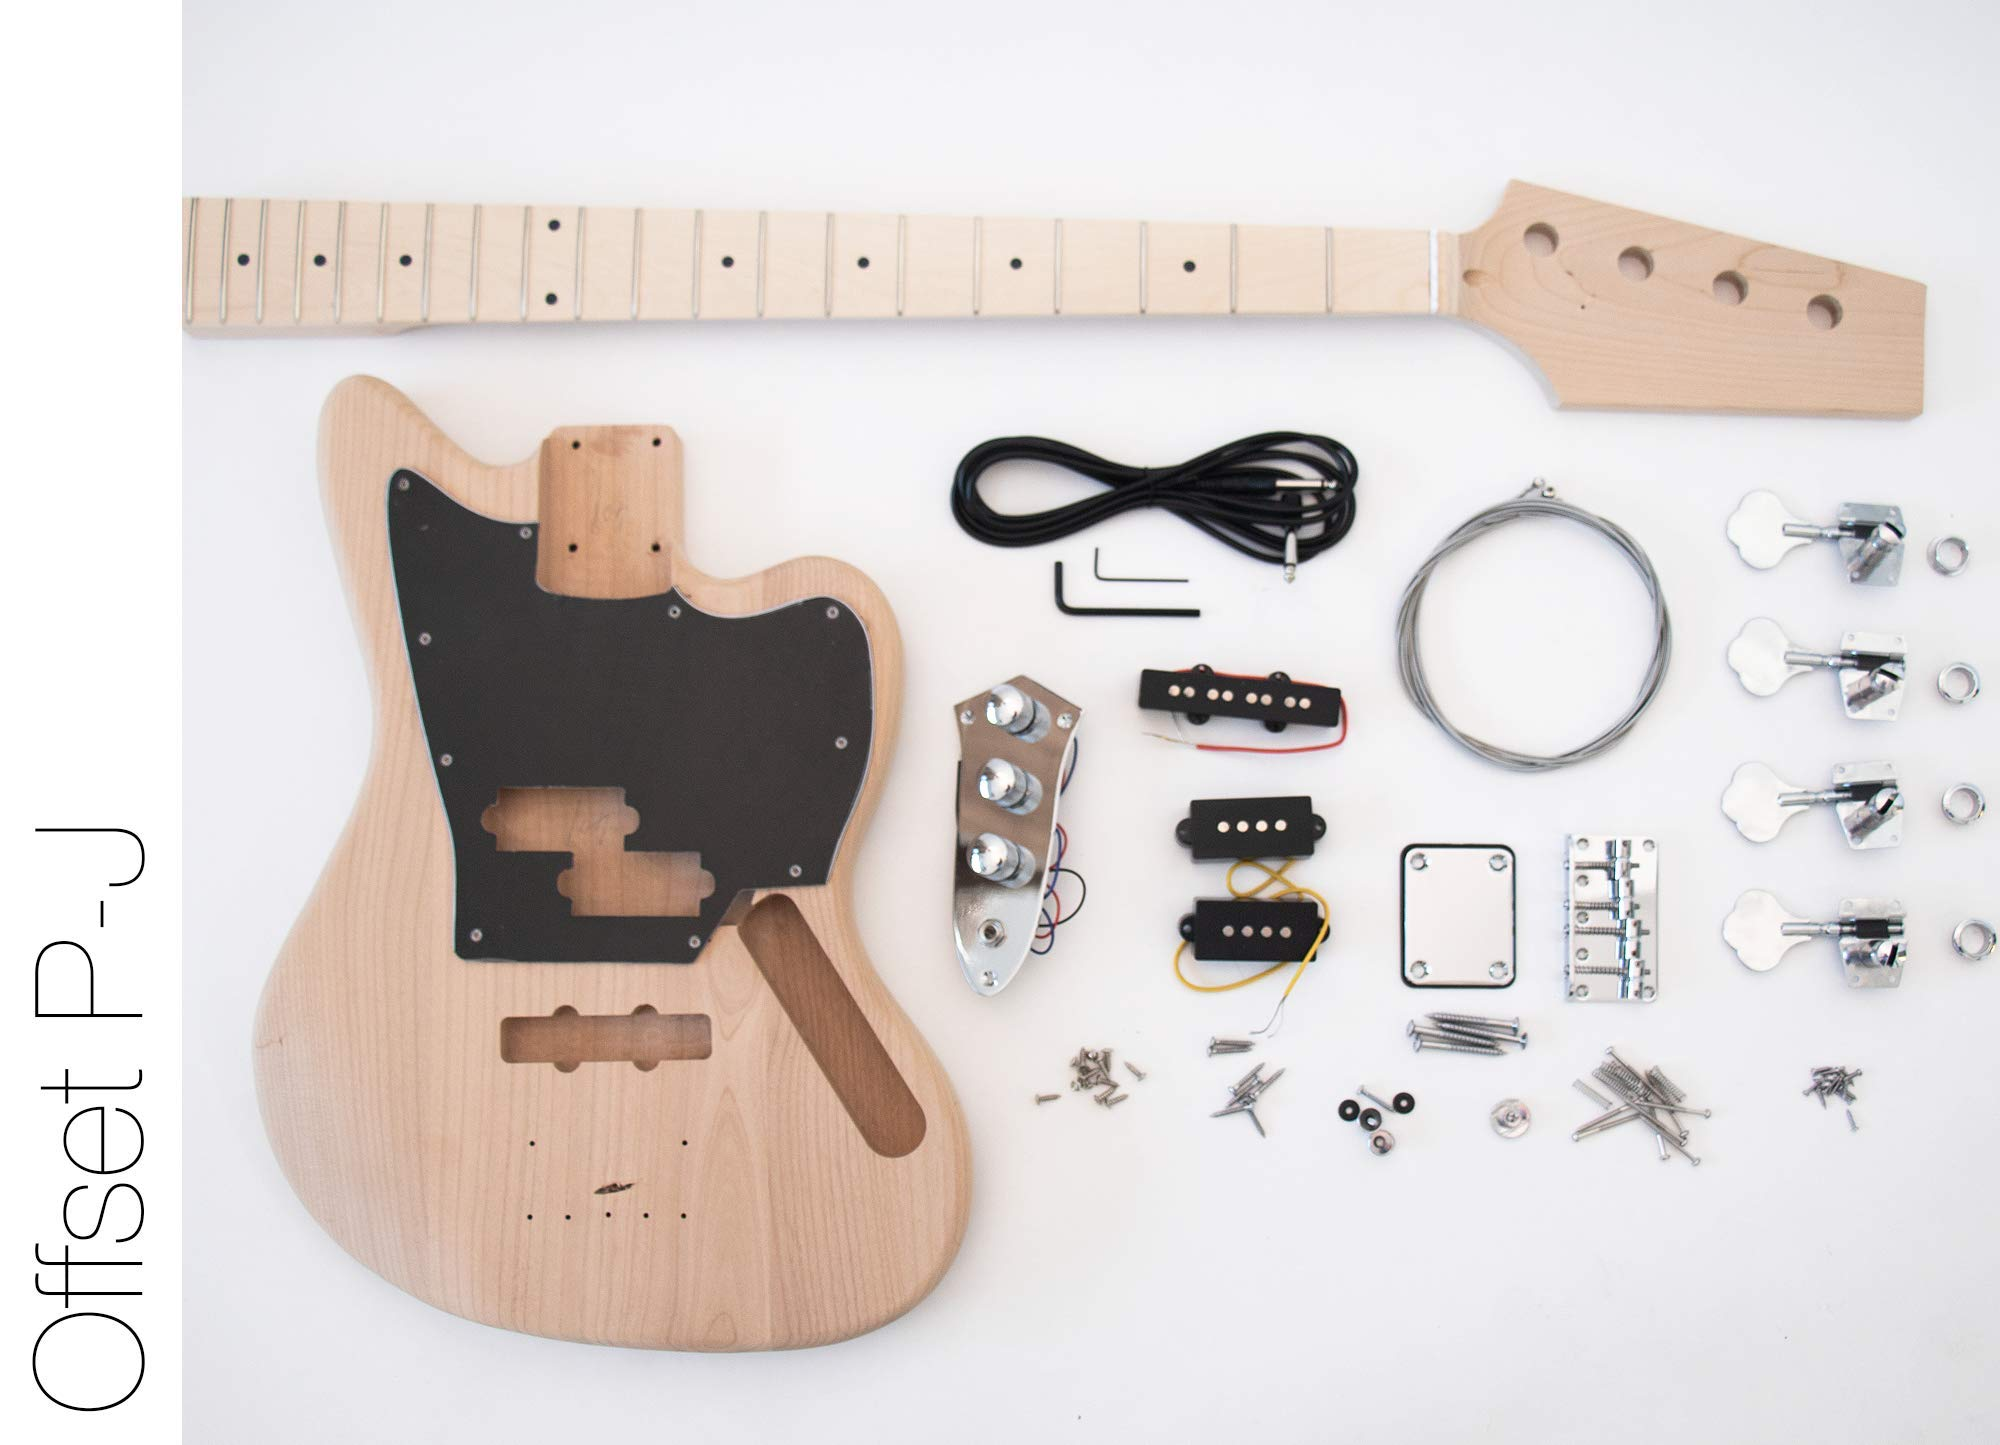 The FretWire DIY Electric Bass Guitar Kit - Offset P-J Bass Build Your Own